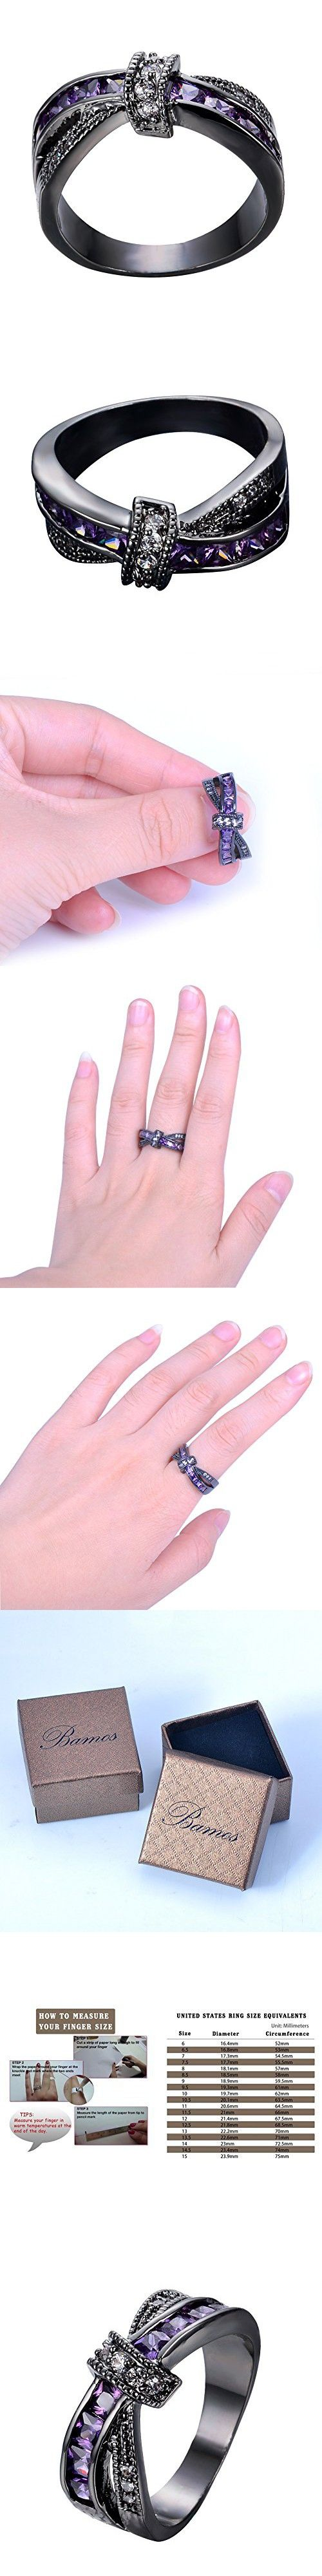 Bamos Jewelry Black Gold Purple Diamond Cut Halloween Best Friend Engagement Wedding Rings for Womens and Girls Size 8